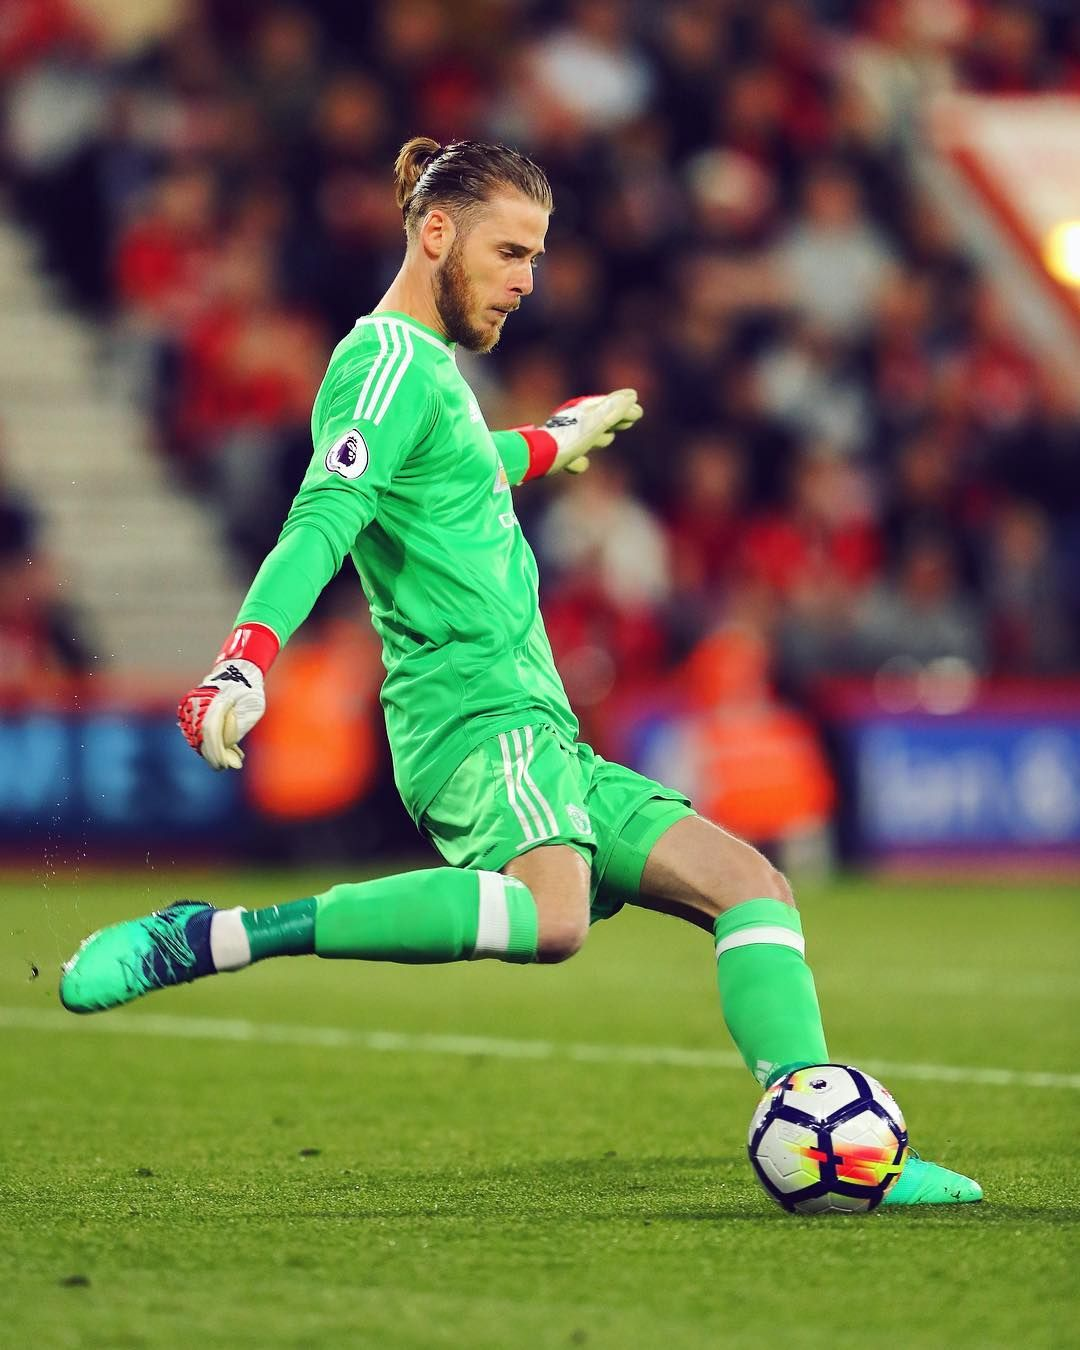 Pfa Team Of The Year Captain S Armband Pl Clean Sheet No 17 A Memorable Day For This Man Degea Manchester United David De Gea Manchester